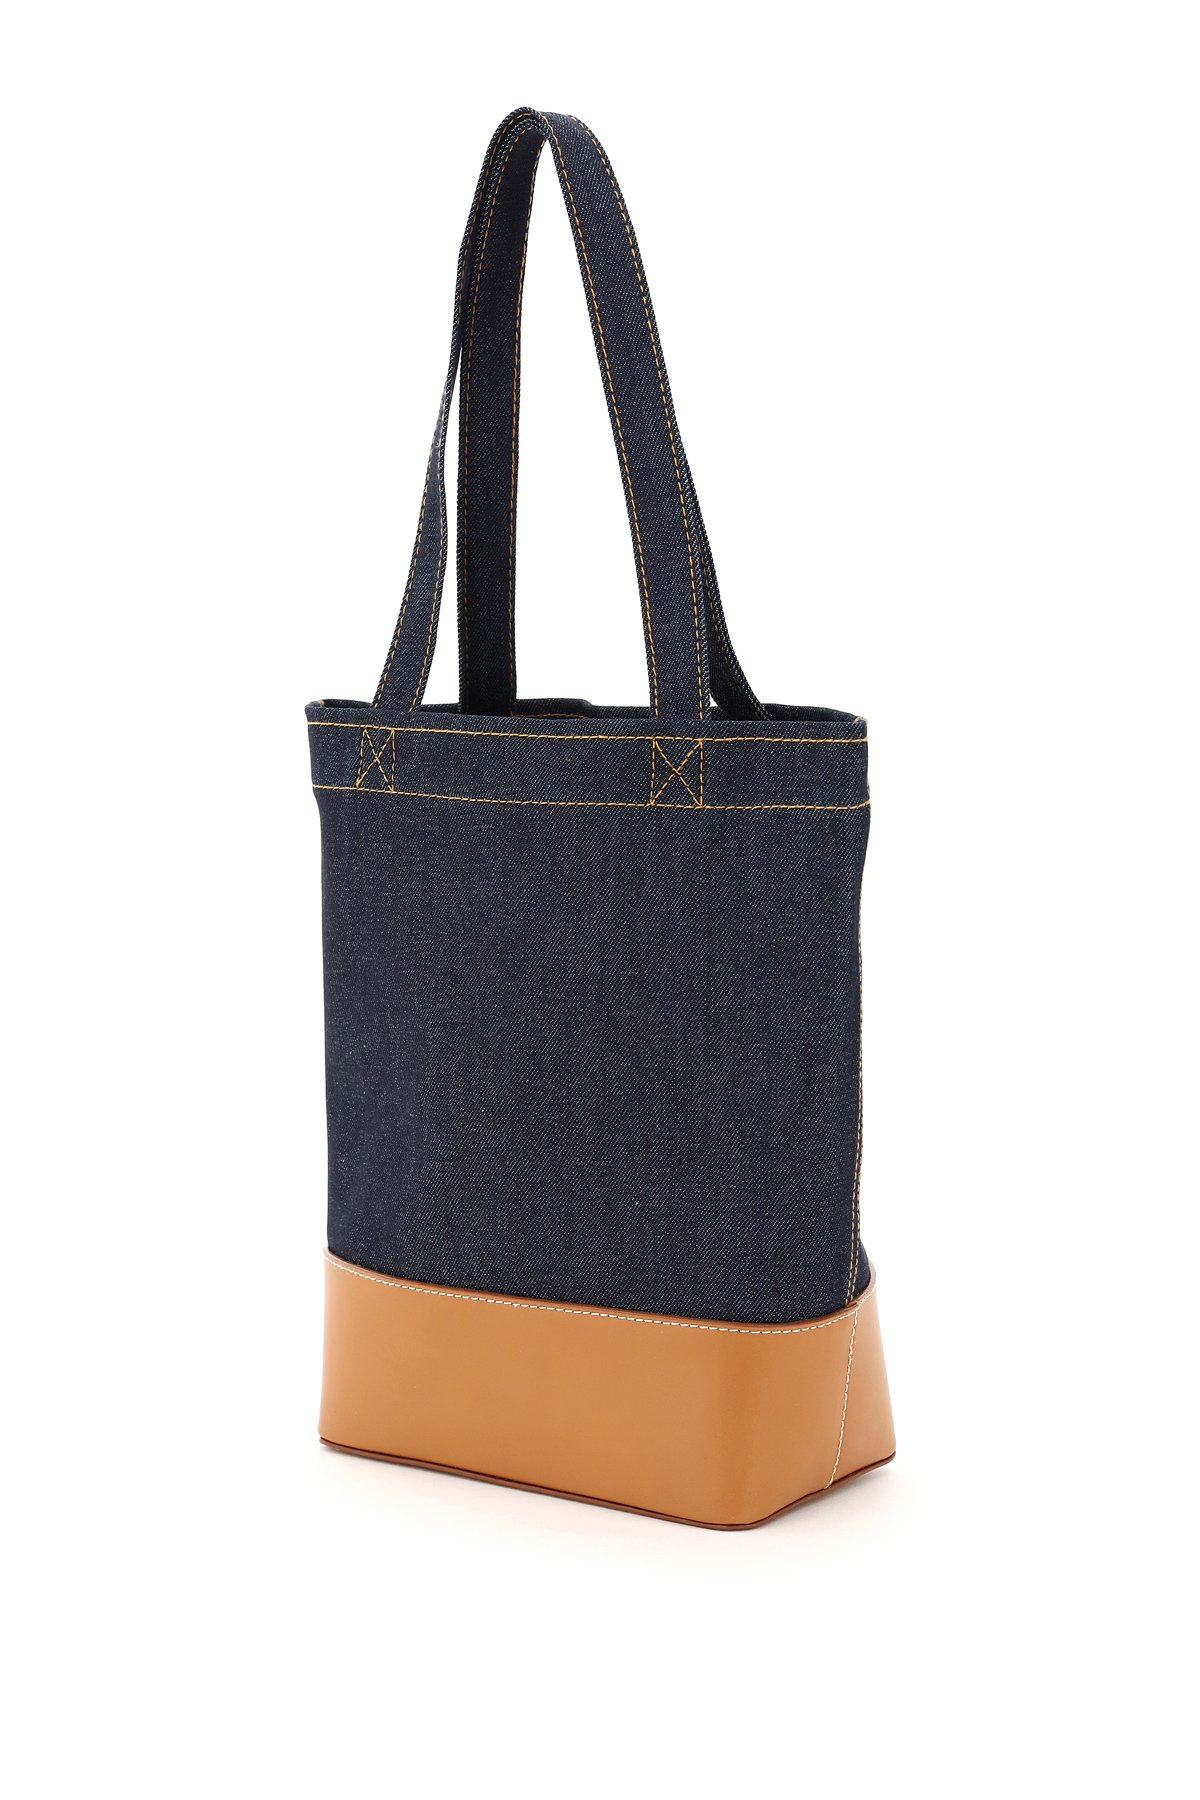 A.p.c. tote axel small